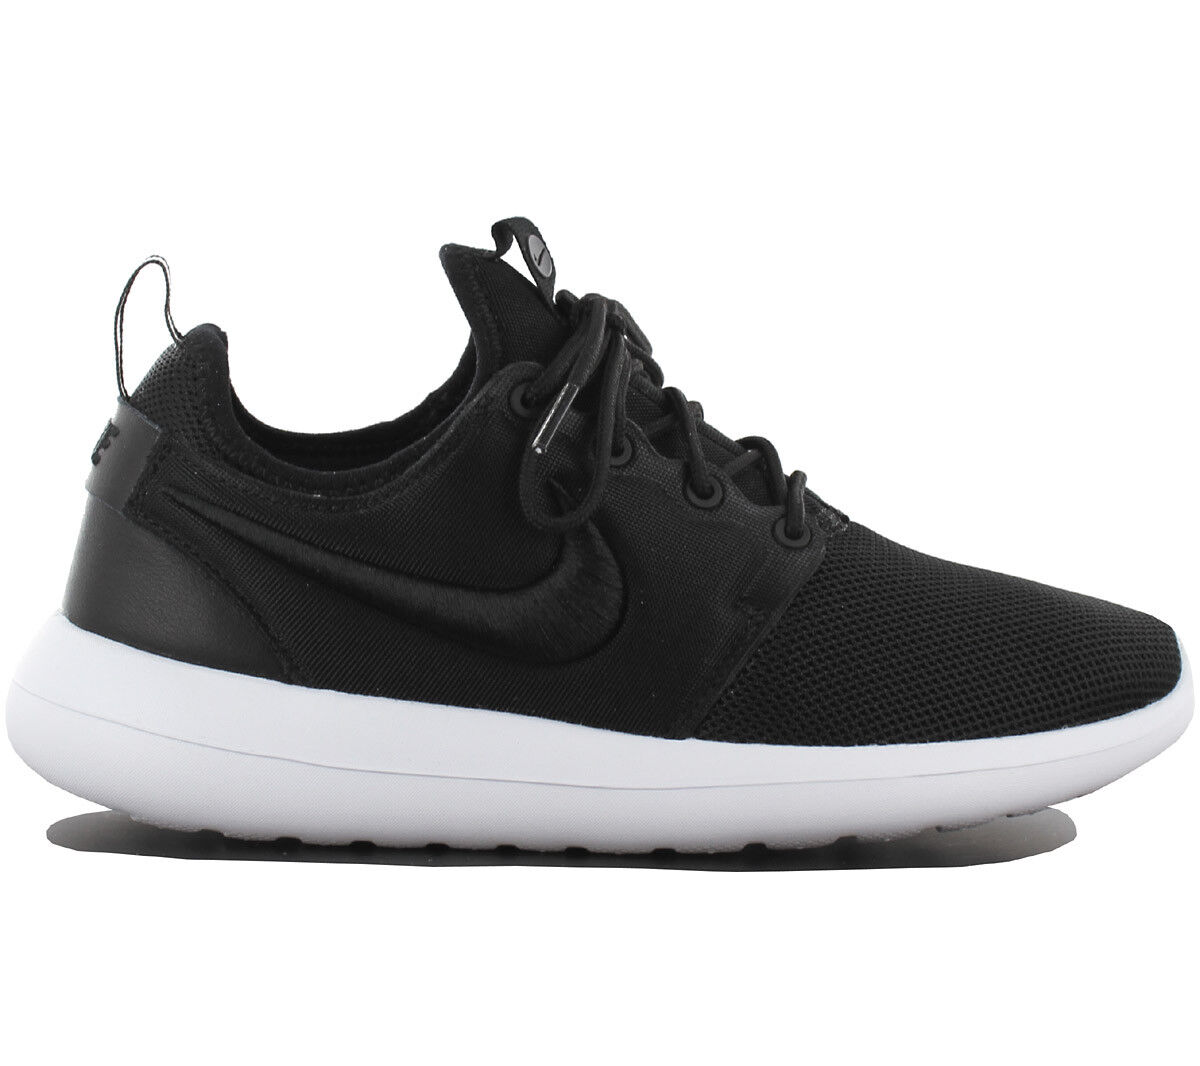 Nike Wmns Roshe Two Br Breathe Scarpe Sneaker Nero One Run 896445-001